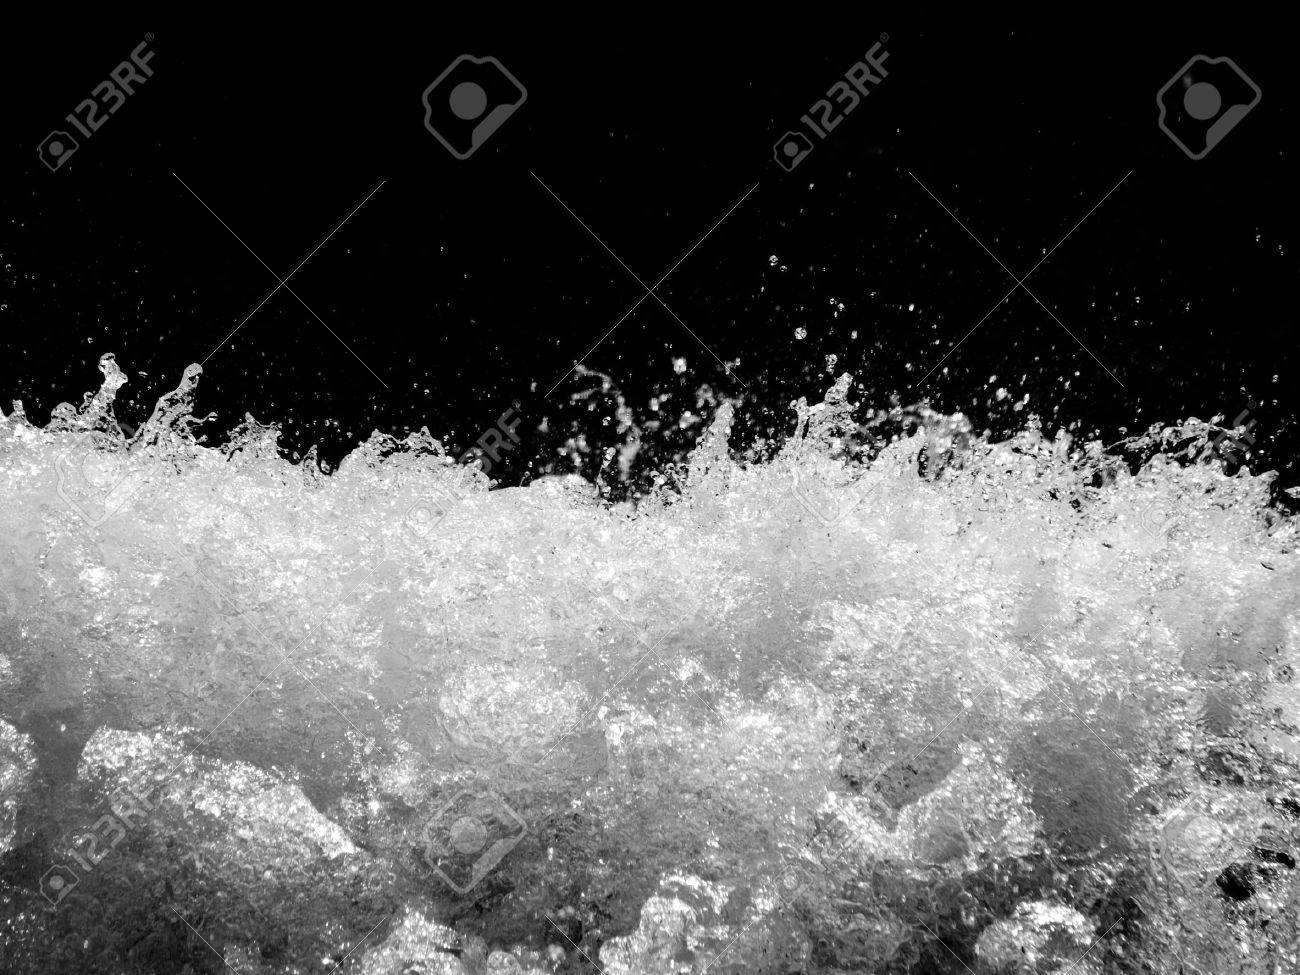 Powerful stormy river with water drops captured on black background Stock Photo - 5508436